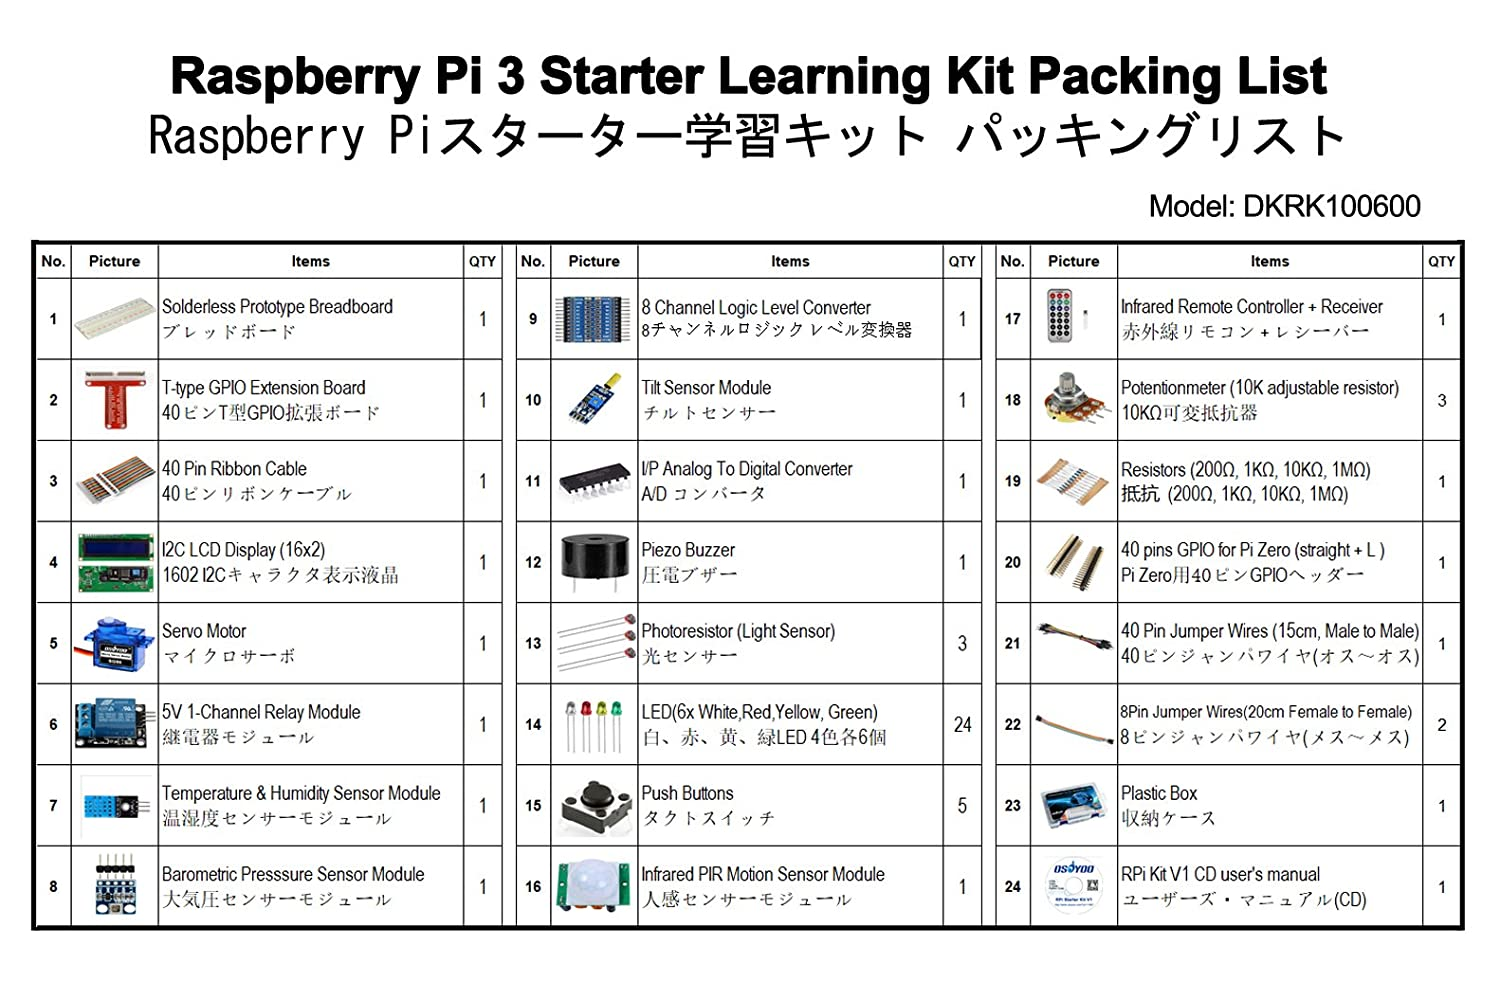 Osoyoo Raspberry Pi 3 Zero W Diy Basic Starter Learning Wiringpi I2c Functions Kit 2018 Updated For Beginners Home Improvement